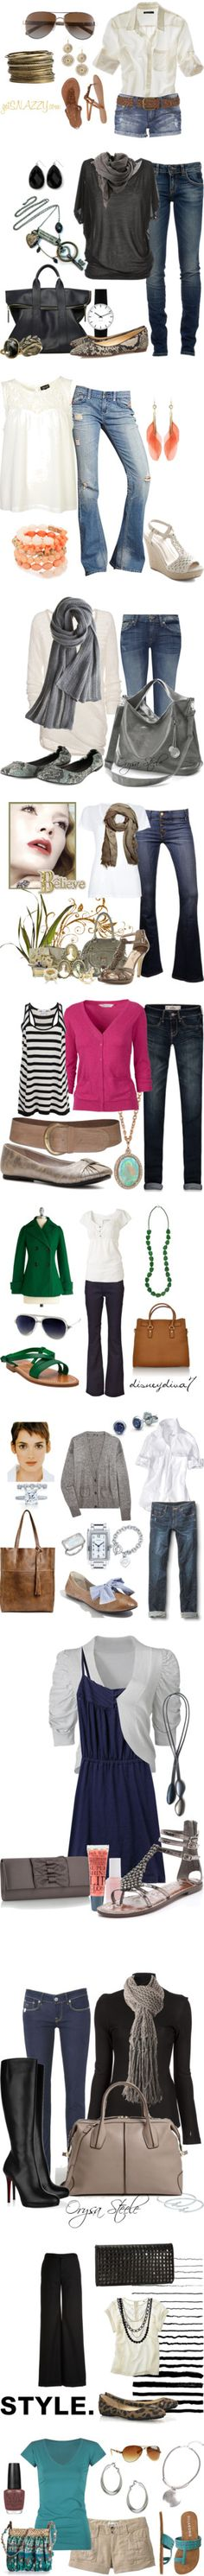 """Outfits from Basics - Moms of Polyvore"" by getsnazzy ❤ liked on Polyvore"